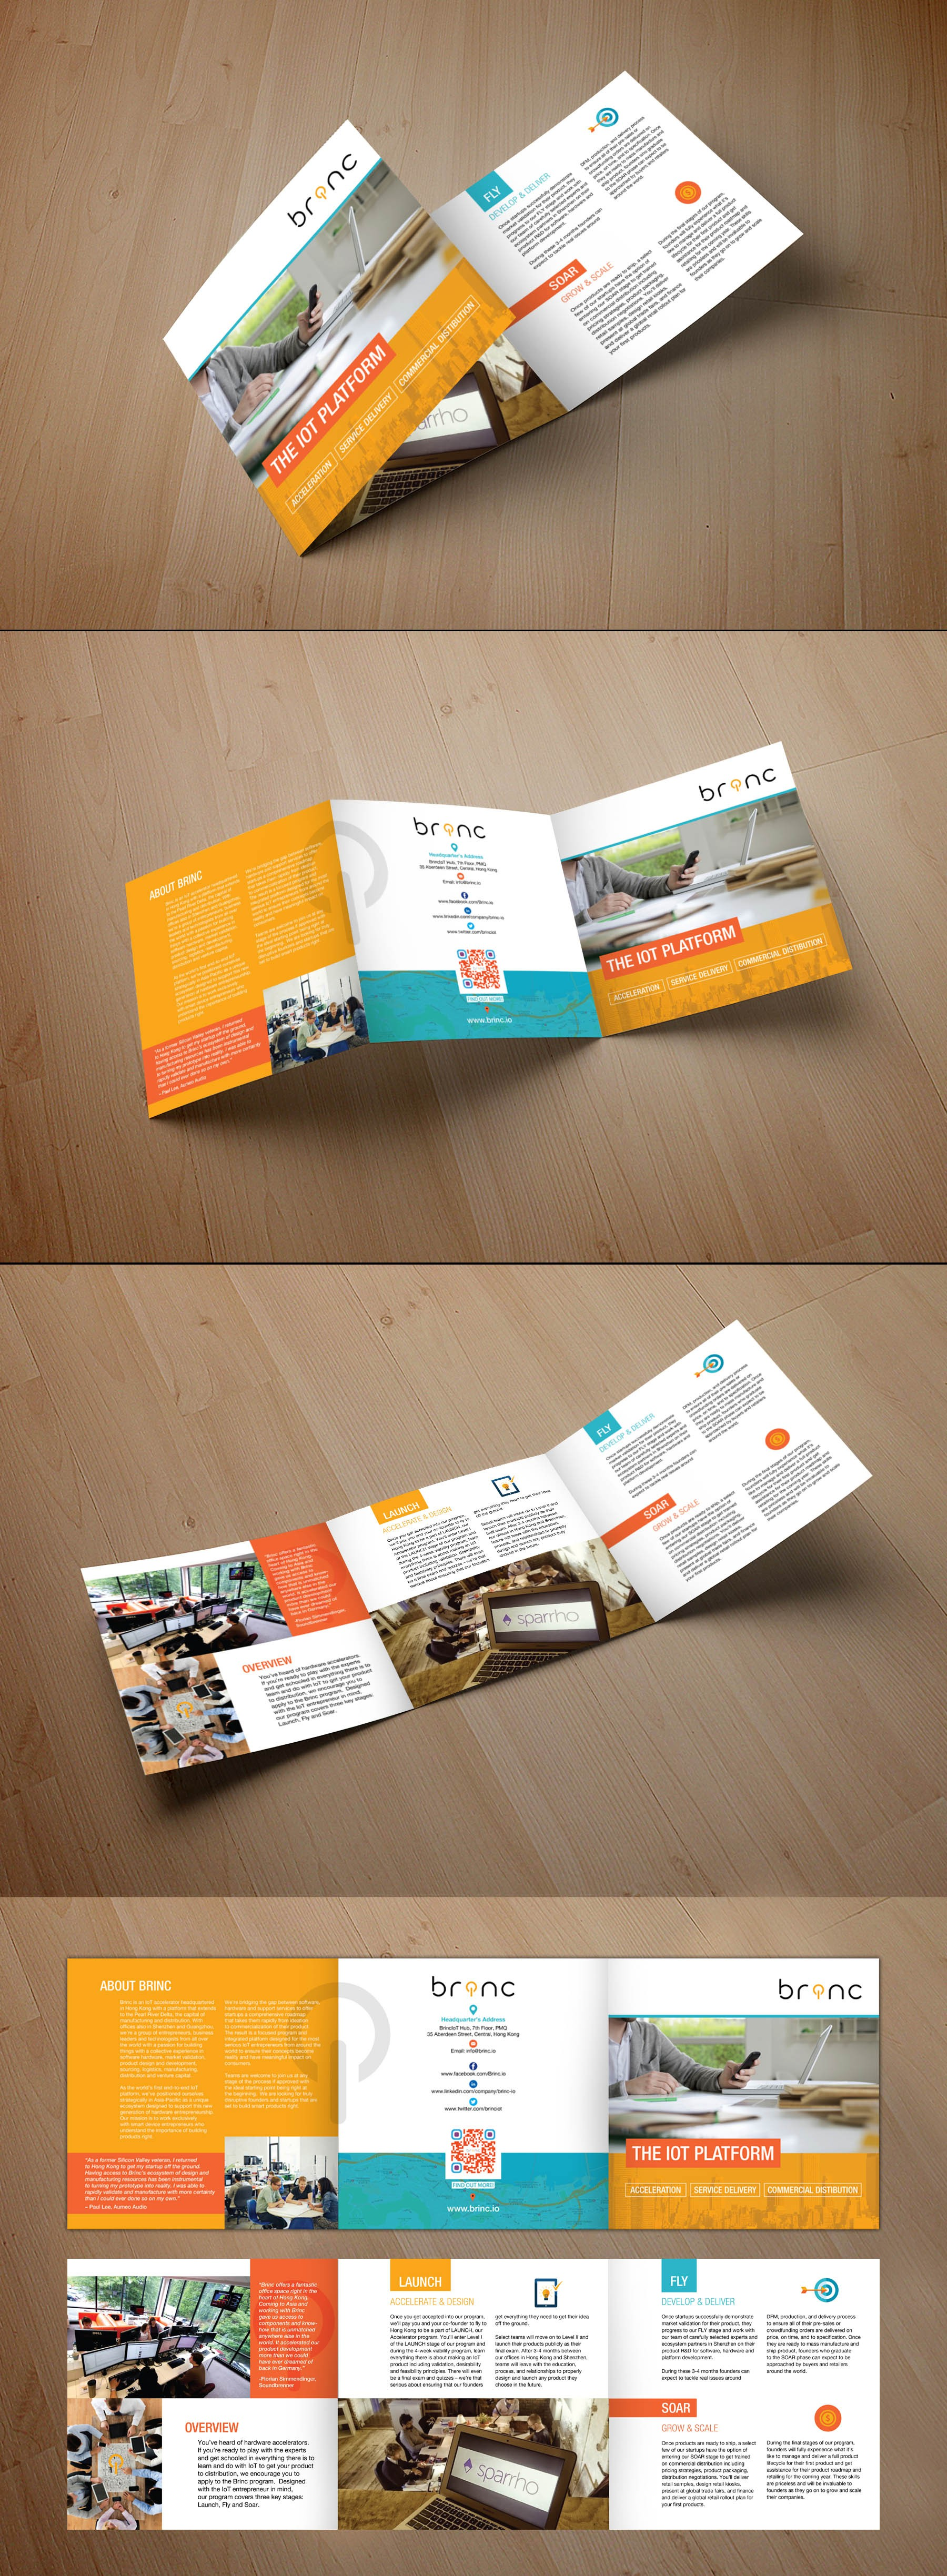 Create an innovative and creative company Brochure for a new Tech Start-up Accelerator in Hong Kong